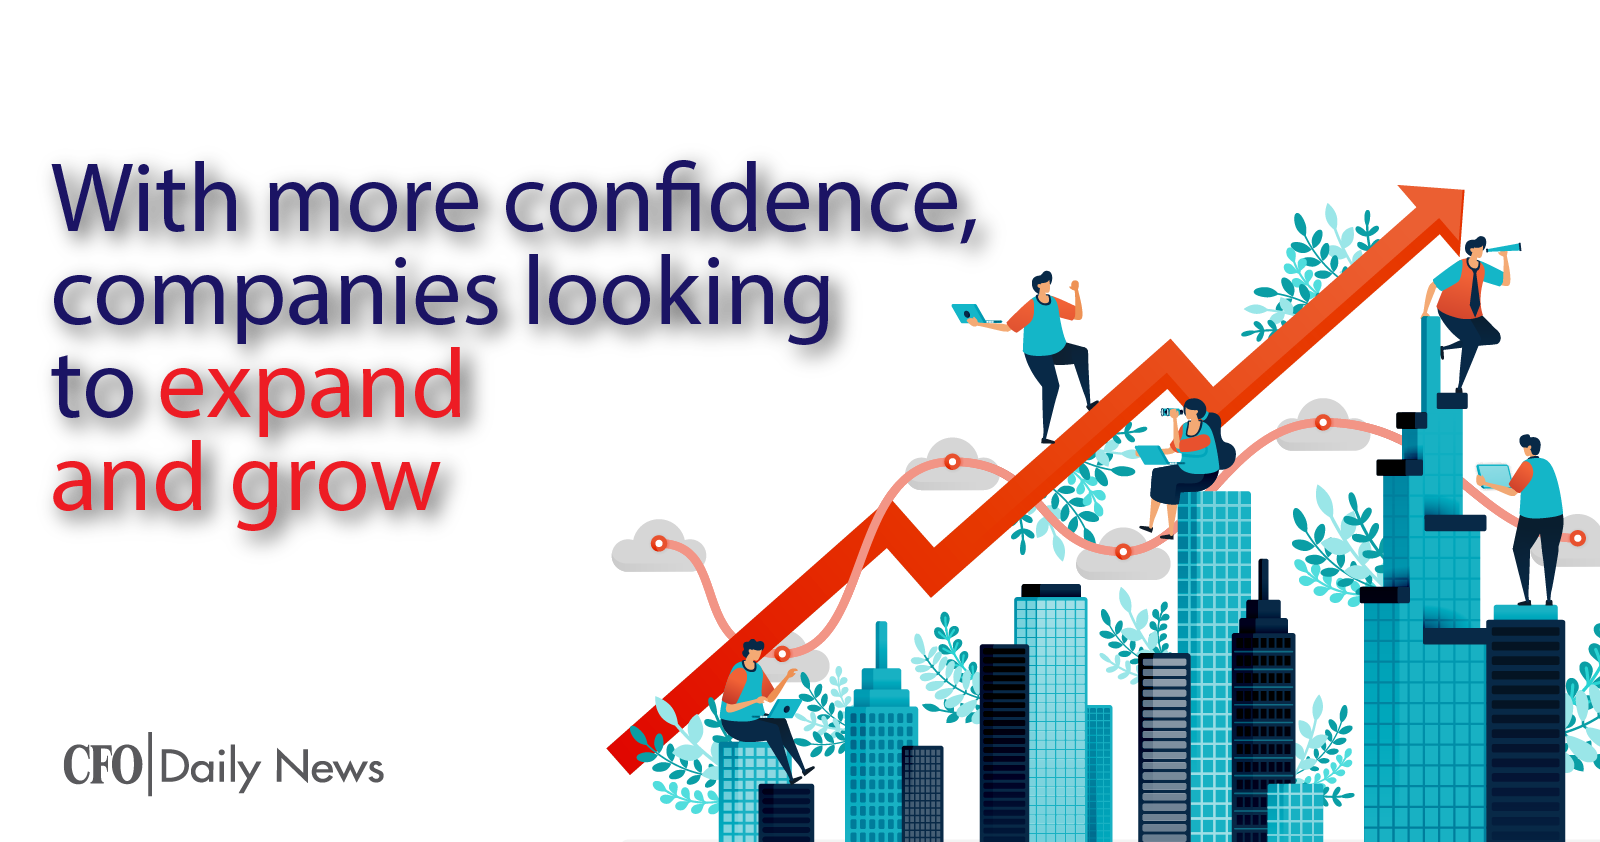 with more confidence companies looking to expand and grow